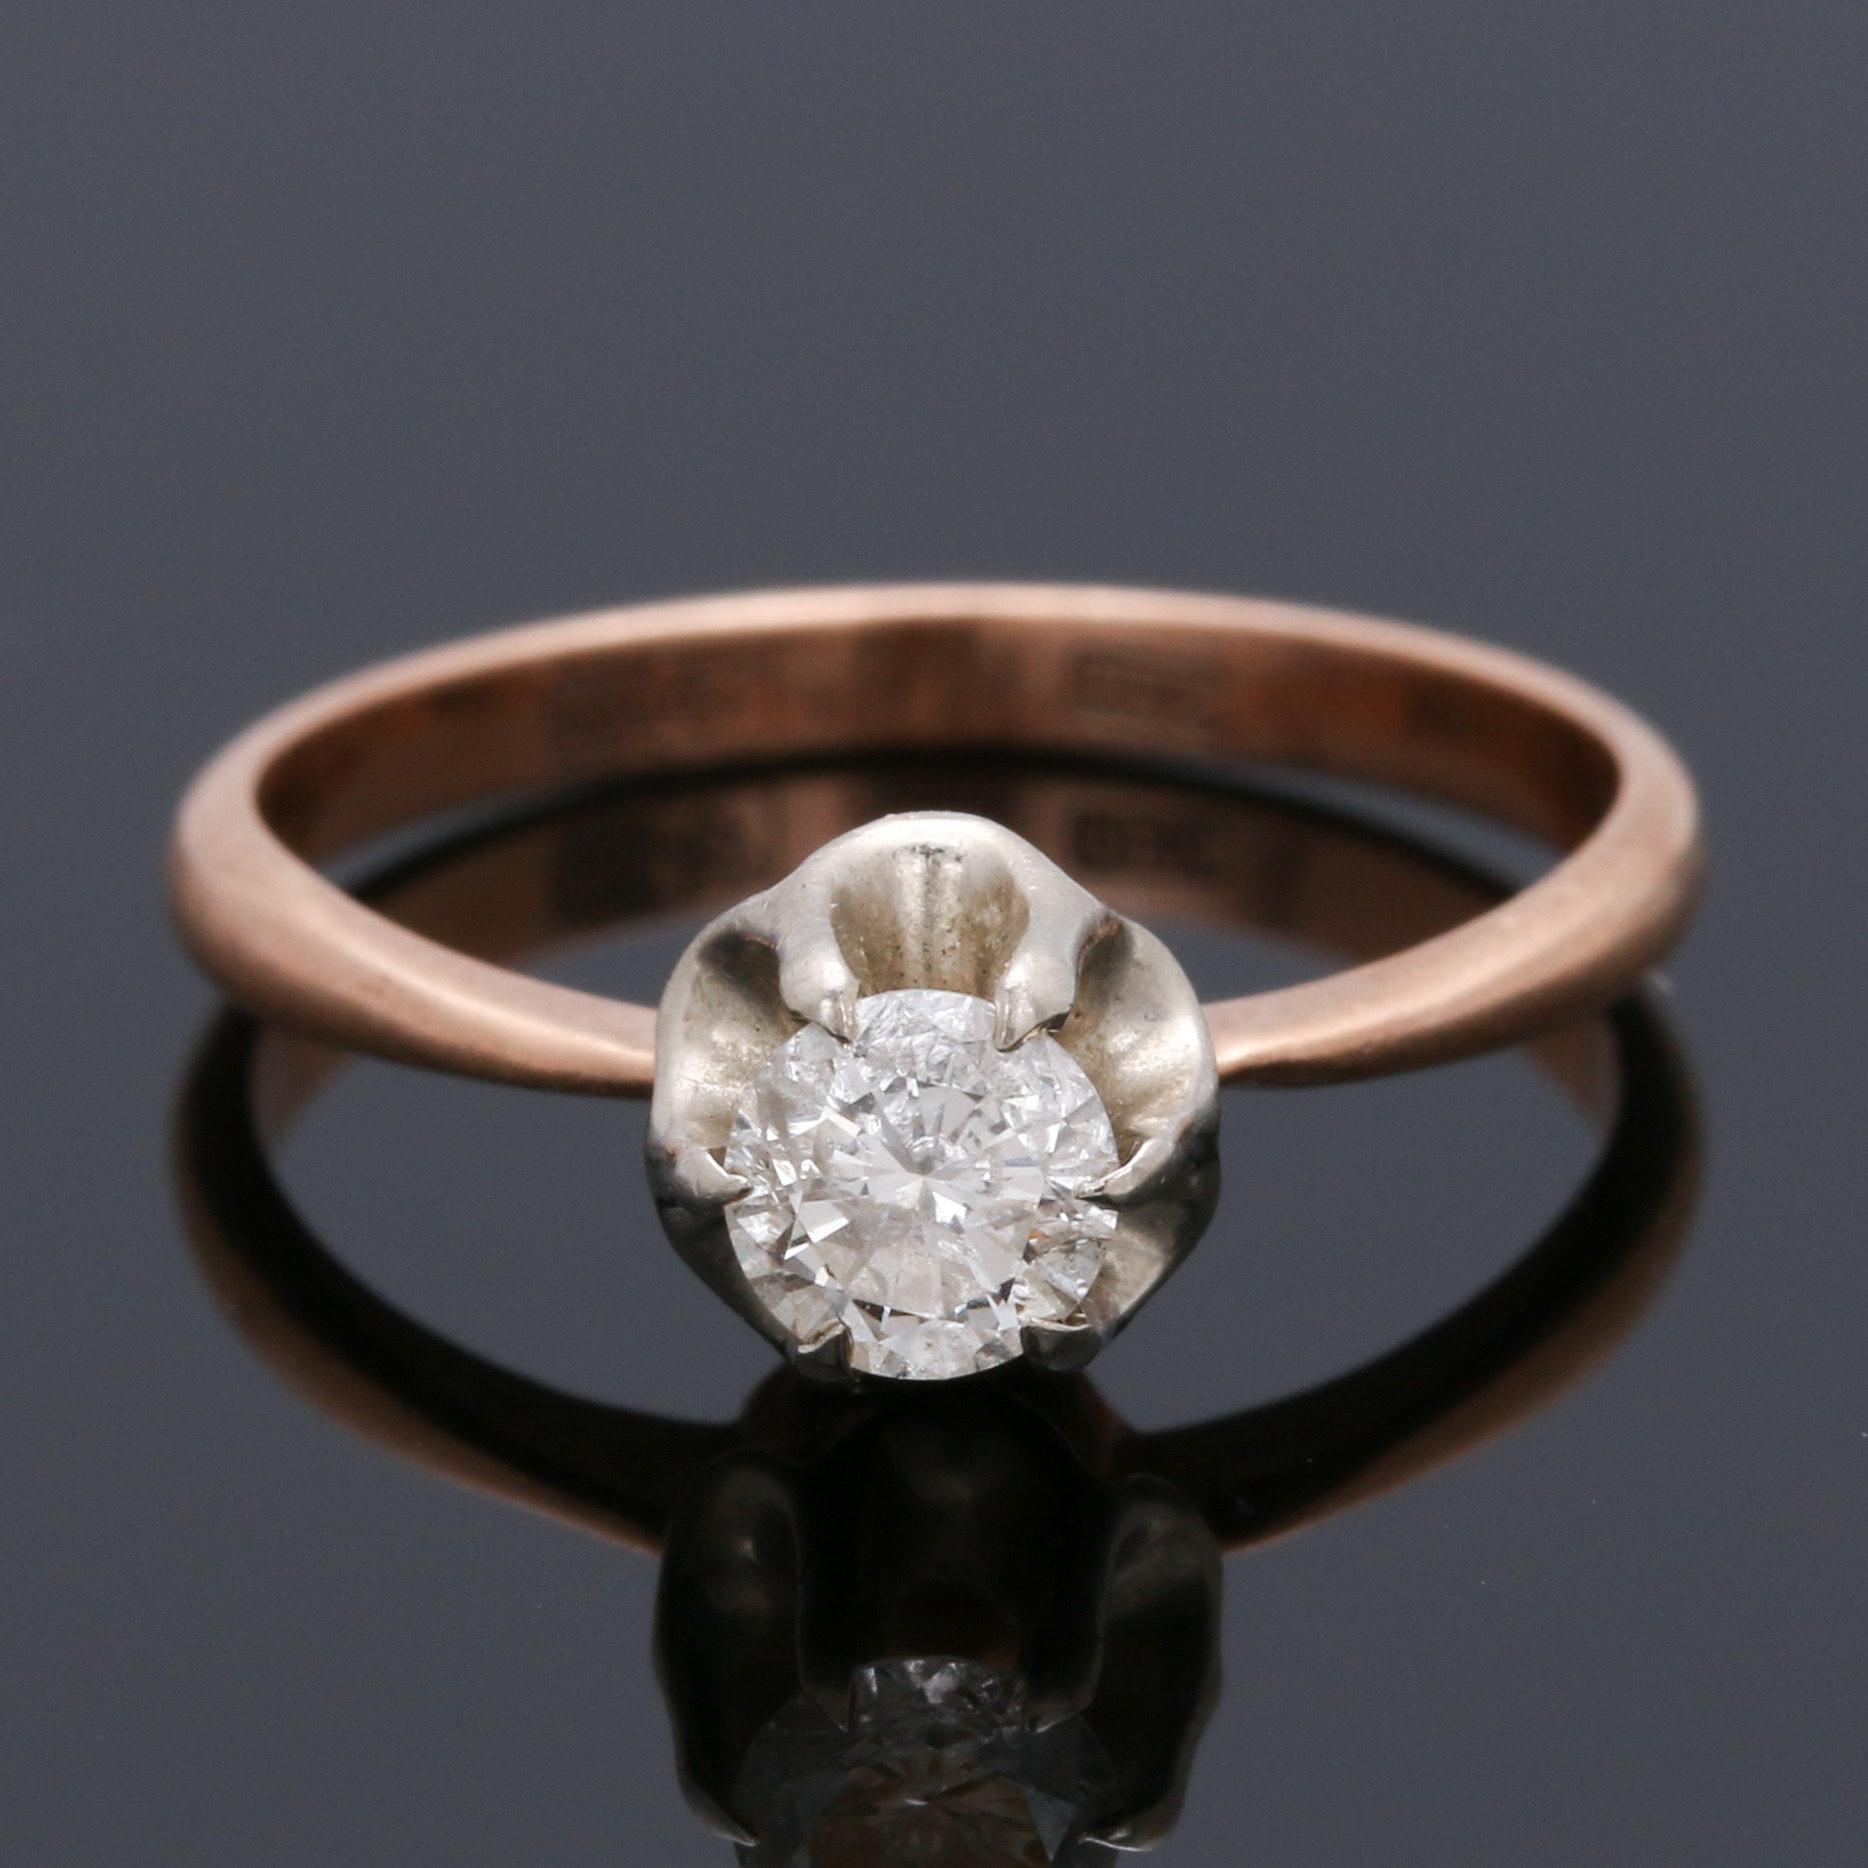 14K Two Tone Gold Diamond Solitaire Ring